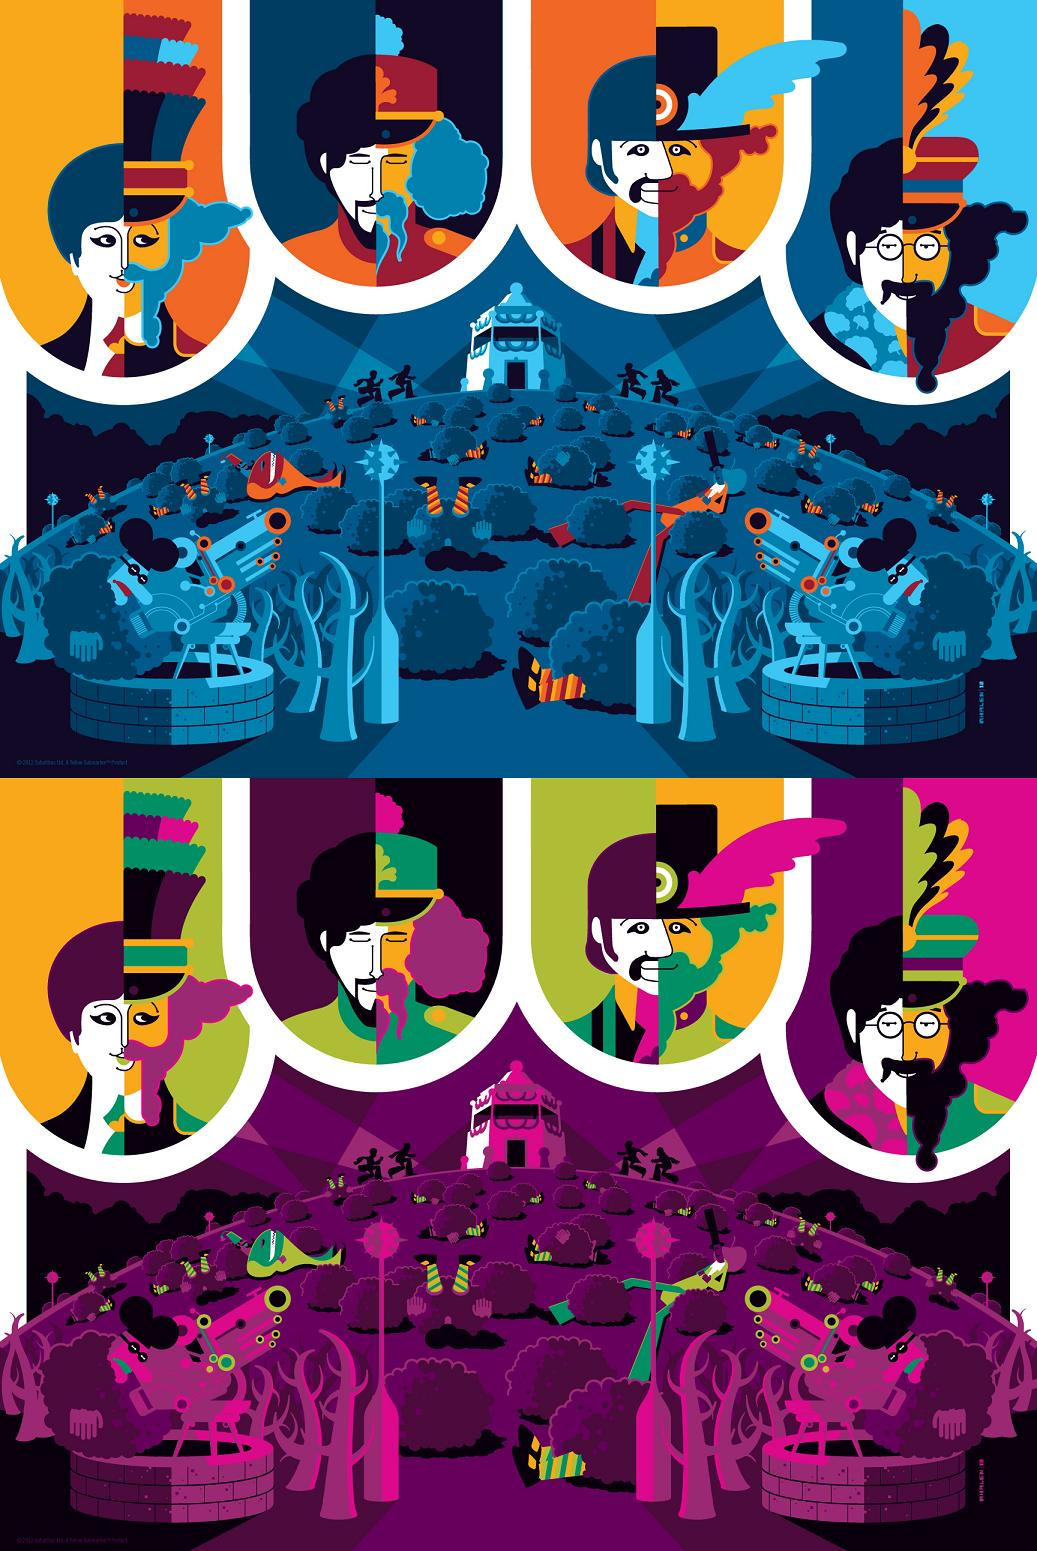 http://3.bp.blogspot.com/-iVwus1GB47I/T6doRt1fRkI/AAAAAAAAPnc/IFsCiMAukm4/s1600/The+Beatles+Yellow+Submarine+Print+Set+by+Tom+Whalen+-+Print+4+Standard+and+Pink+Variant+Editions.jpg